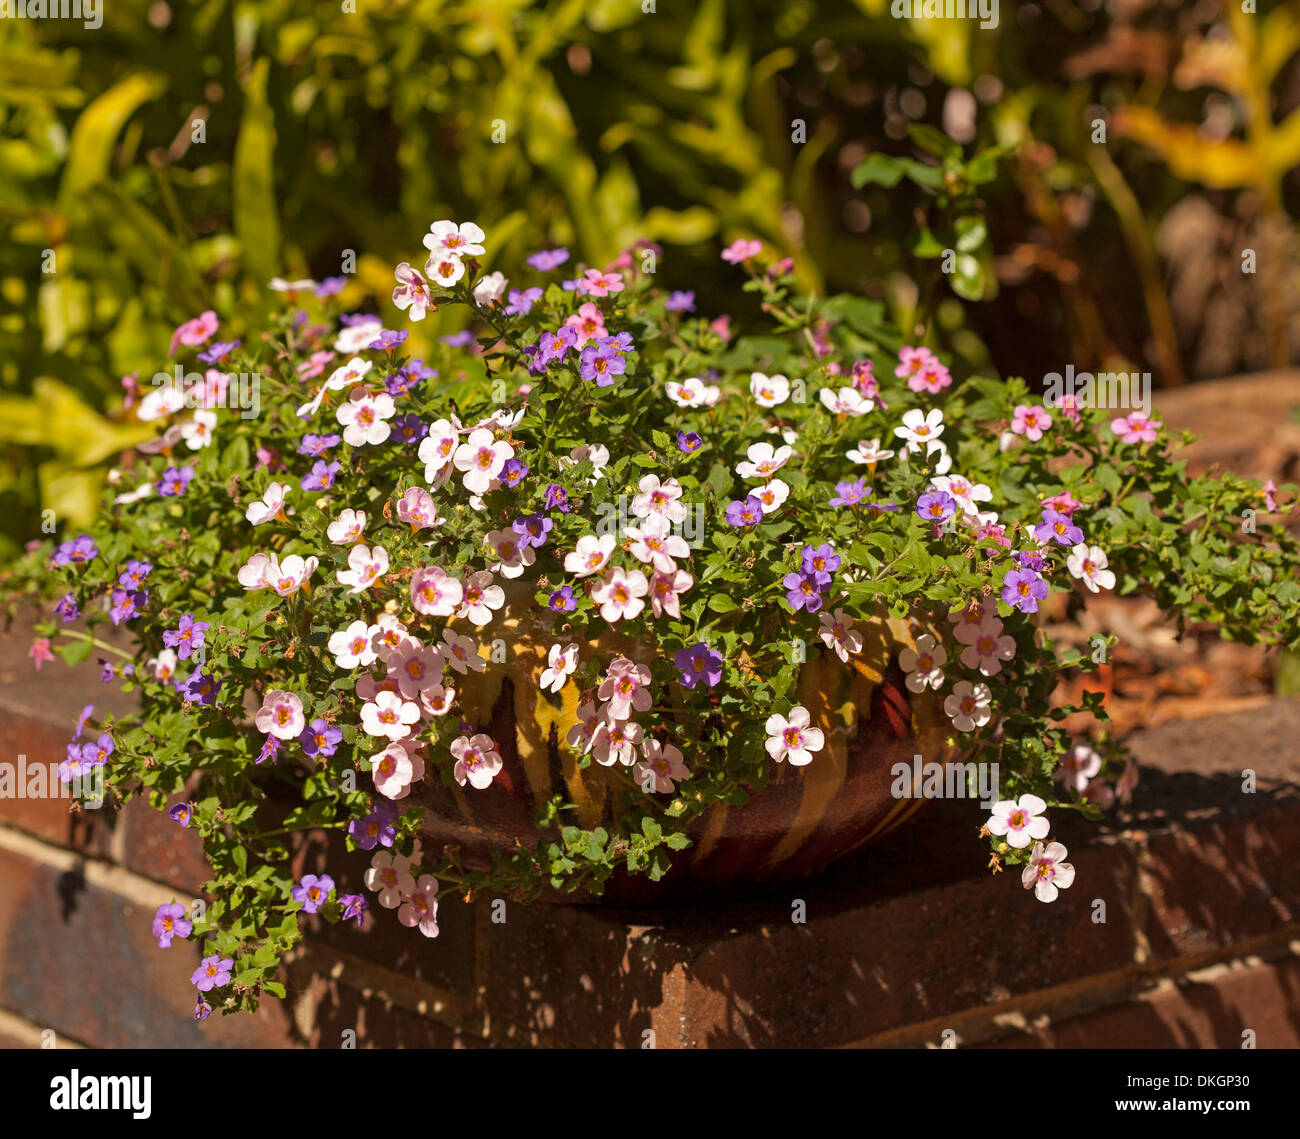 Sutera Cordata Flowering Perennial With Masses Of Pink Mauve And